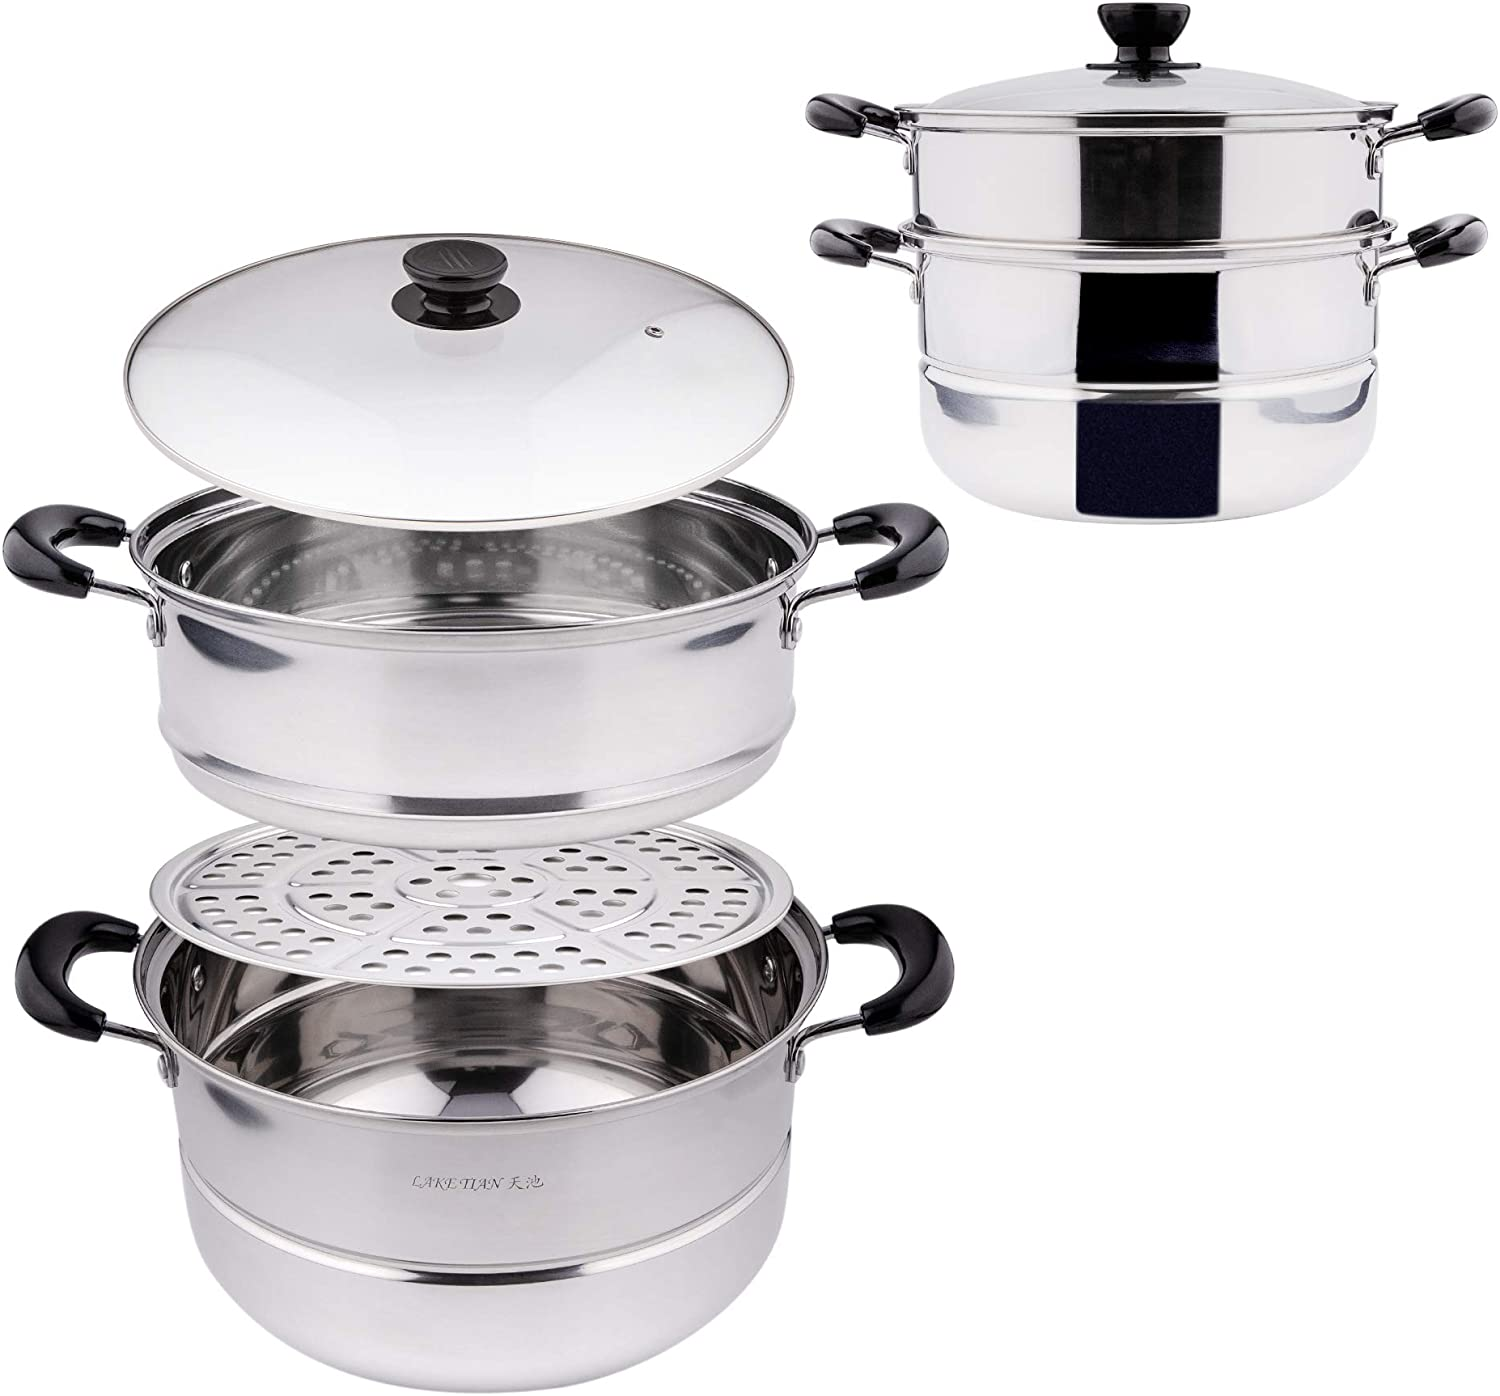 2 Tier Stainless Steel Stackable Cookware Food Steamer Pot For Cooking Pots/Saucepan Set 4 pc w/Rack & Basket Tray, Double Boiler, Vegetable Steamer (28cm/11in) BY Lake Tian